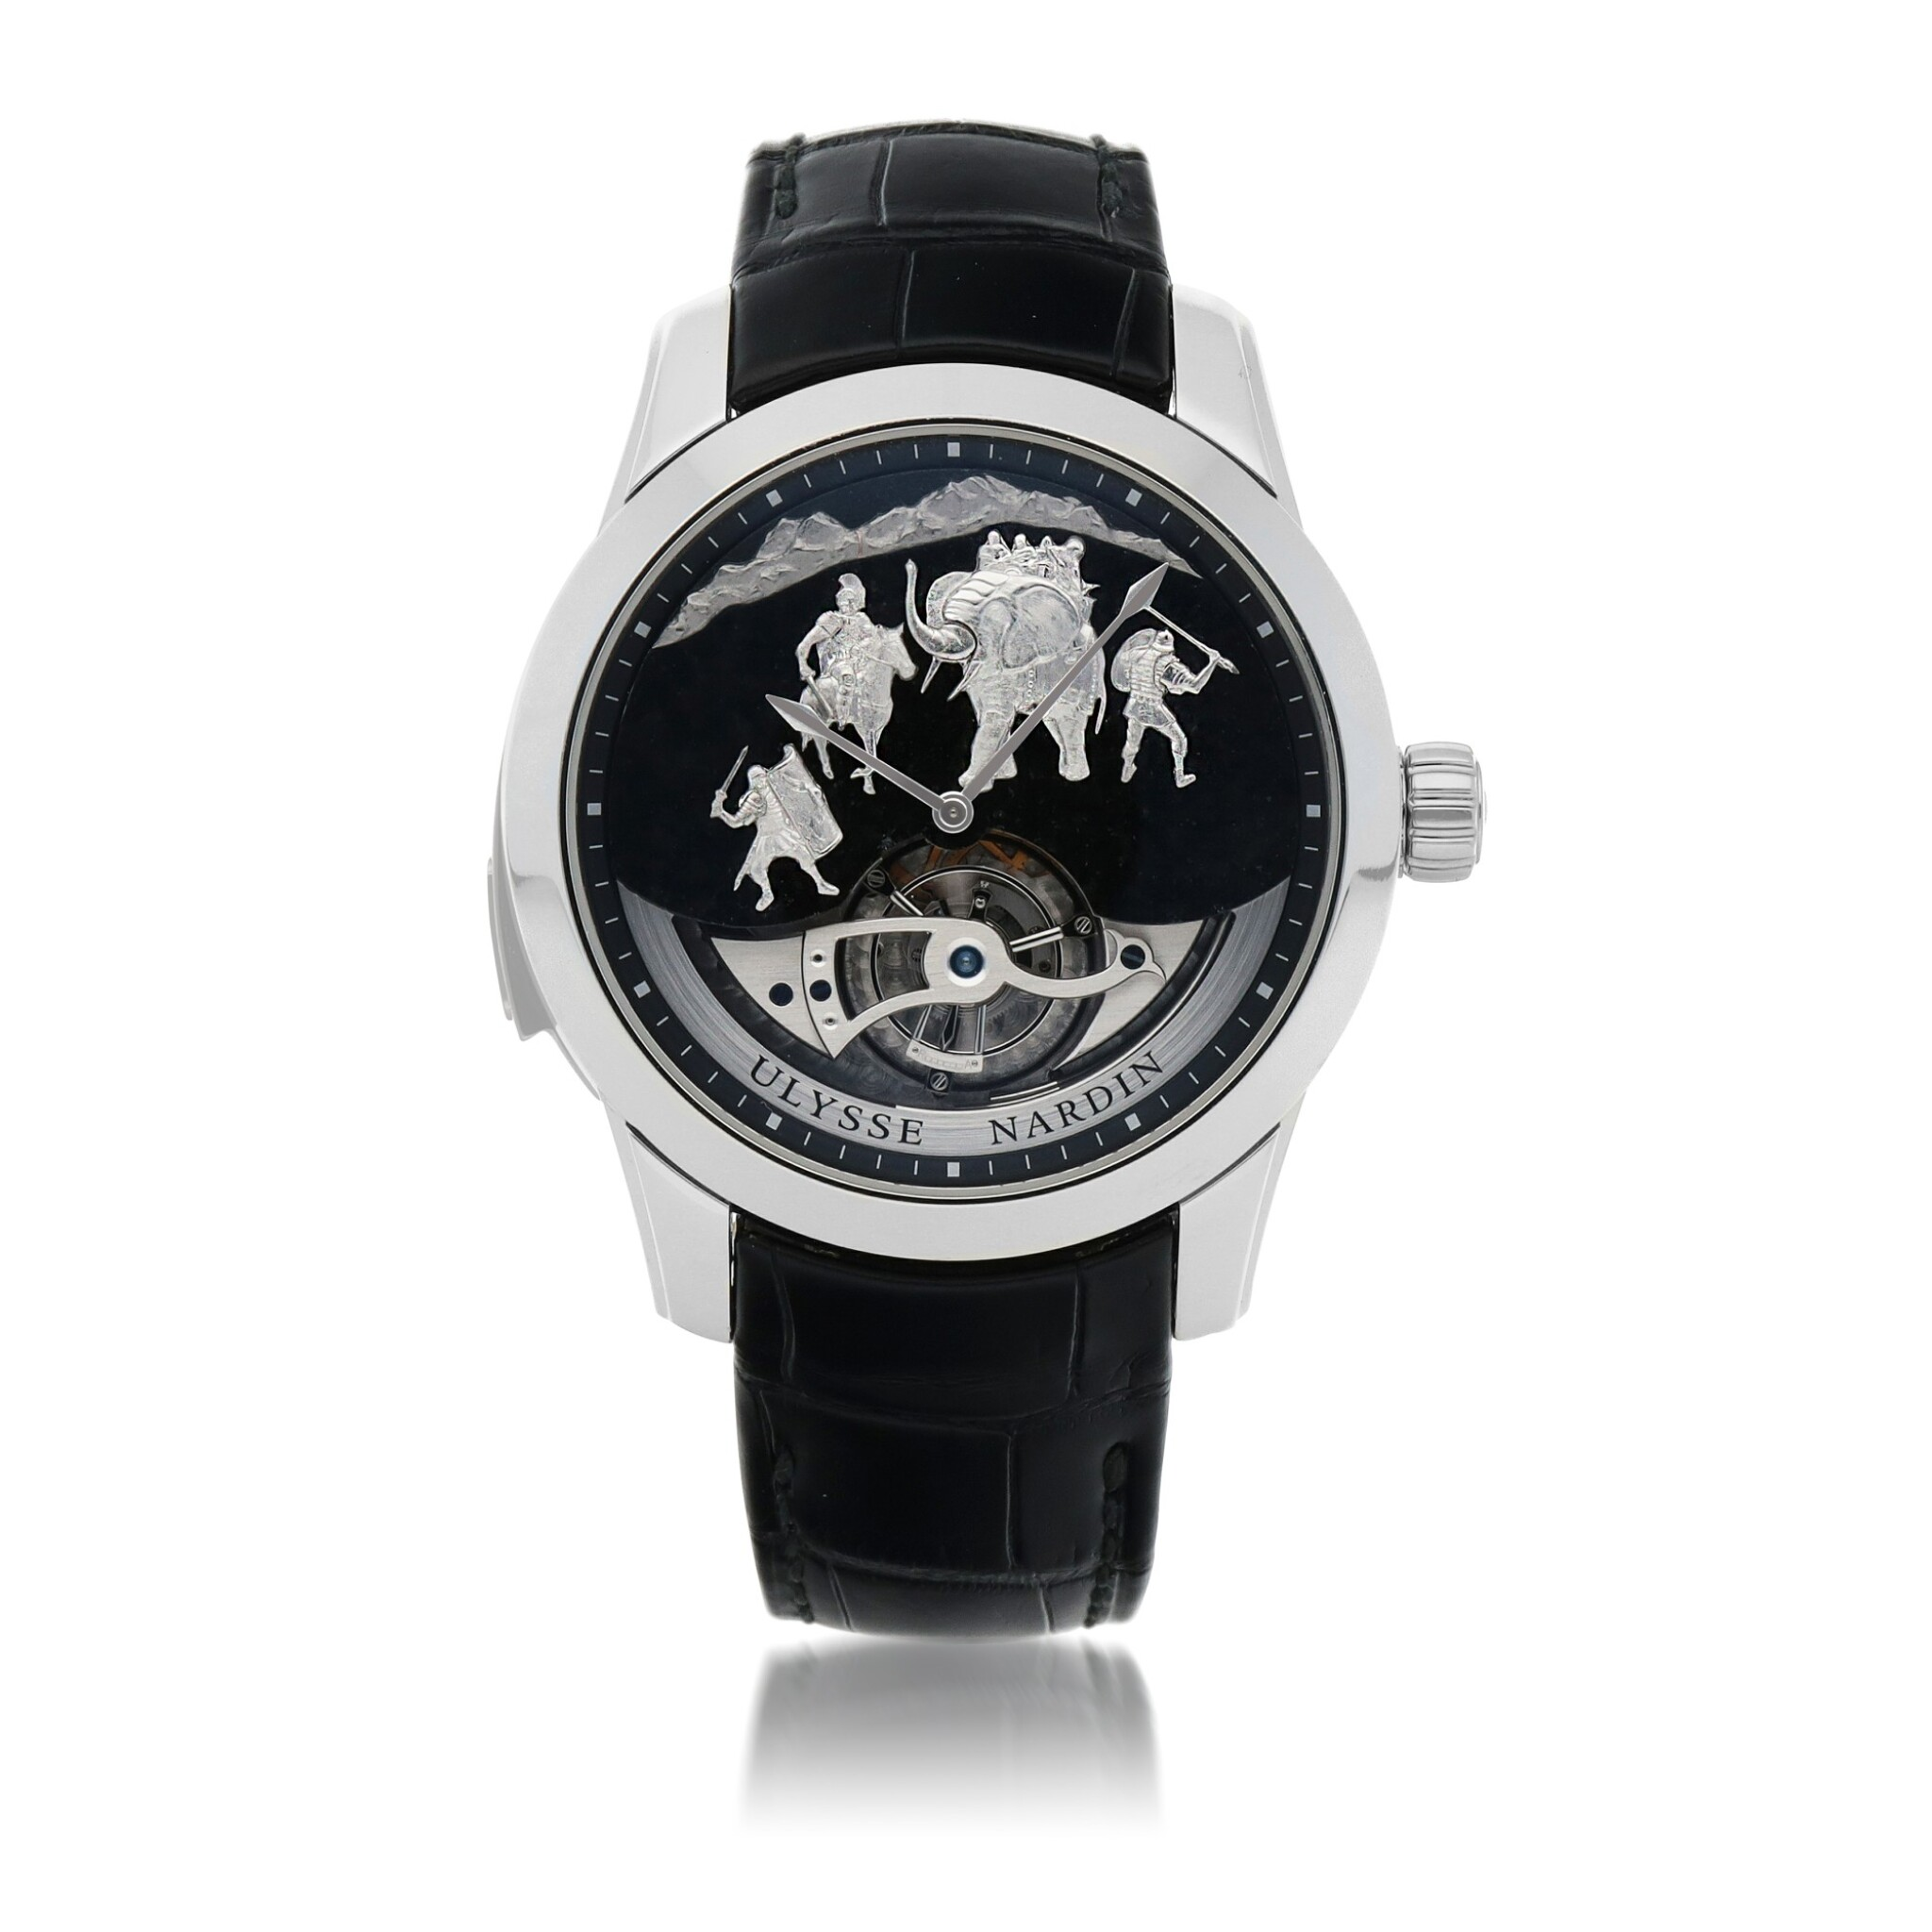 View full screen - View 1 of Lot 426. HANNIBAL, REF 789-00 LIMITED EDITION PLATINUM WESTMINSTER MINUTE REPEATING TOURBILLON WRISTWATCH WITH JAQUEMARTS, GRANITE DIAL AND MATCHING CUFFLINKS CIRCA 2015.